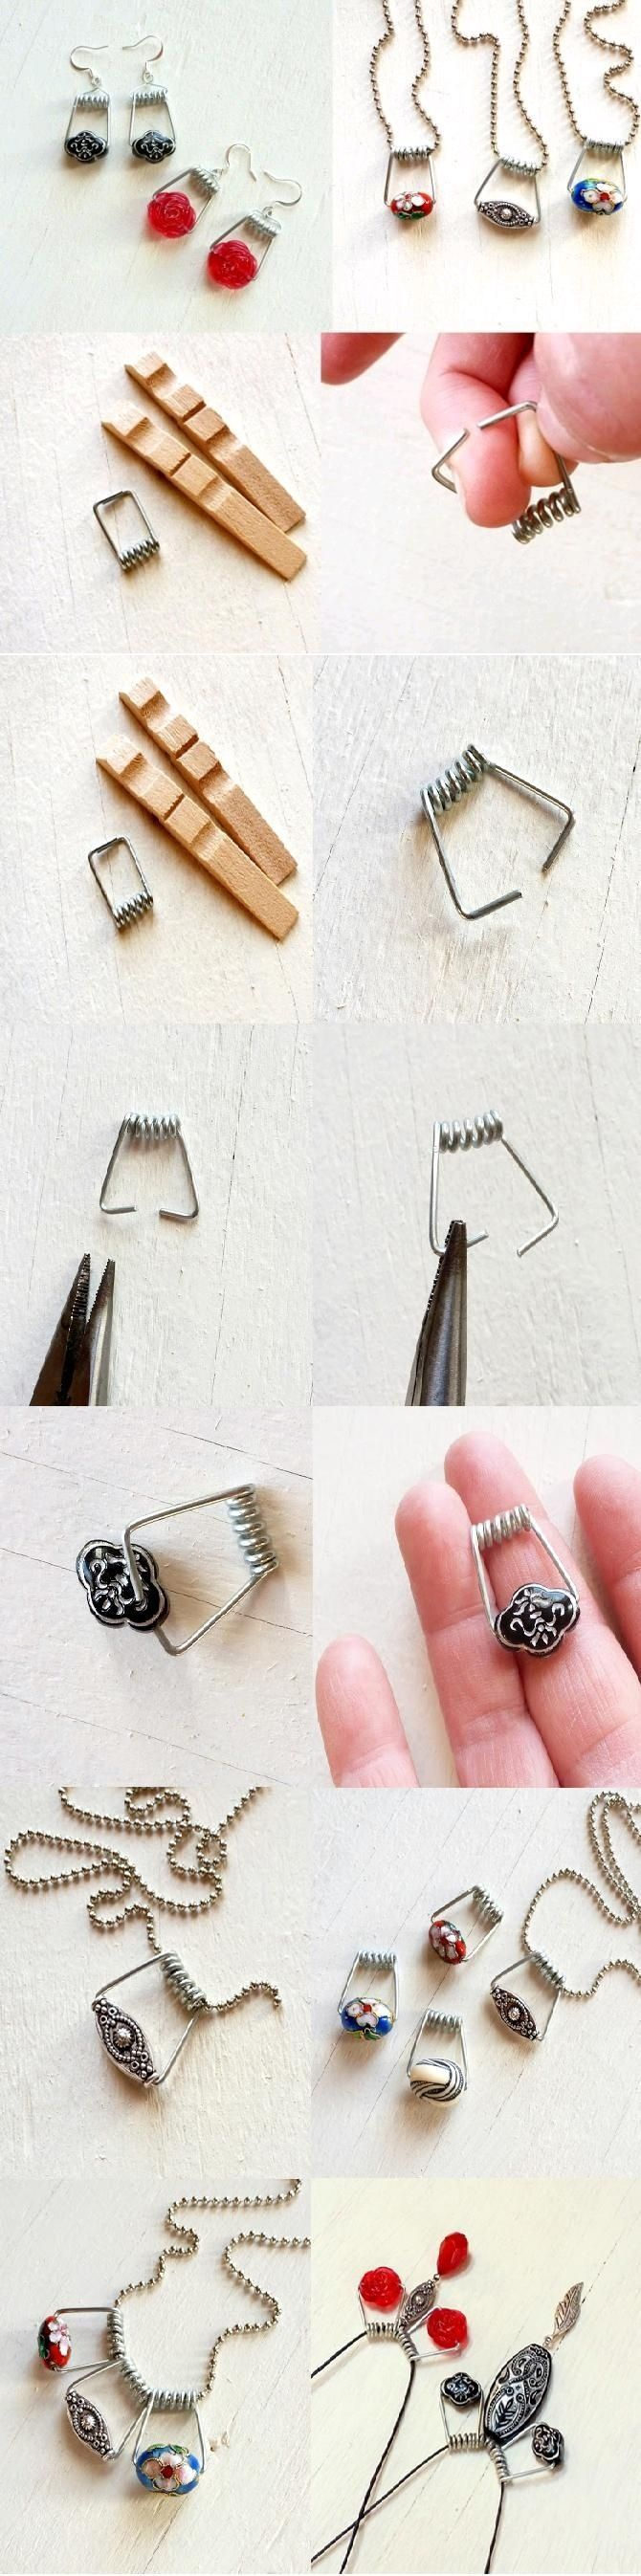 Up cycle clothespins for beautiful jewelry pieces!